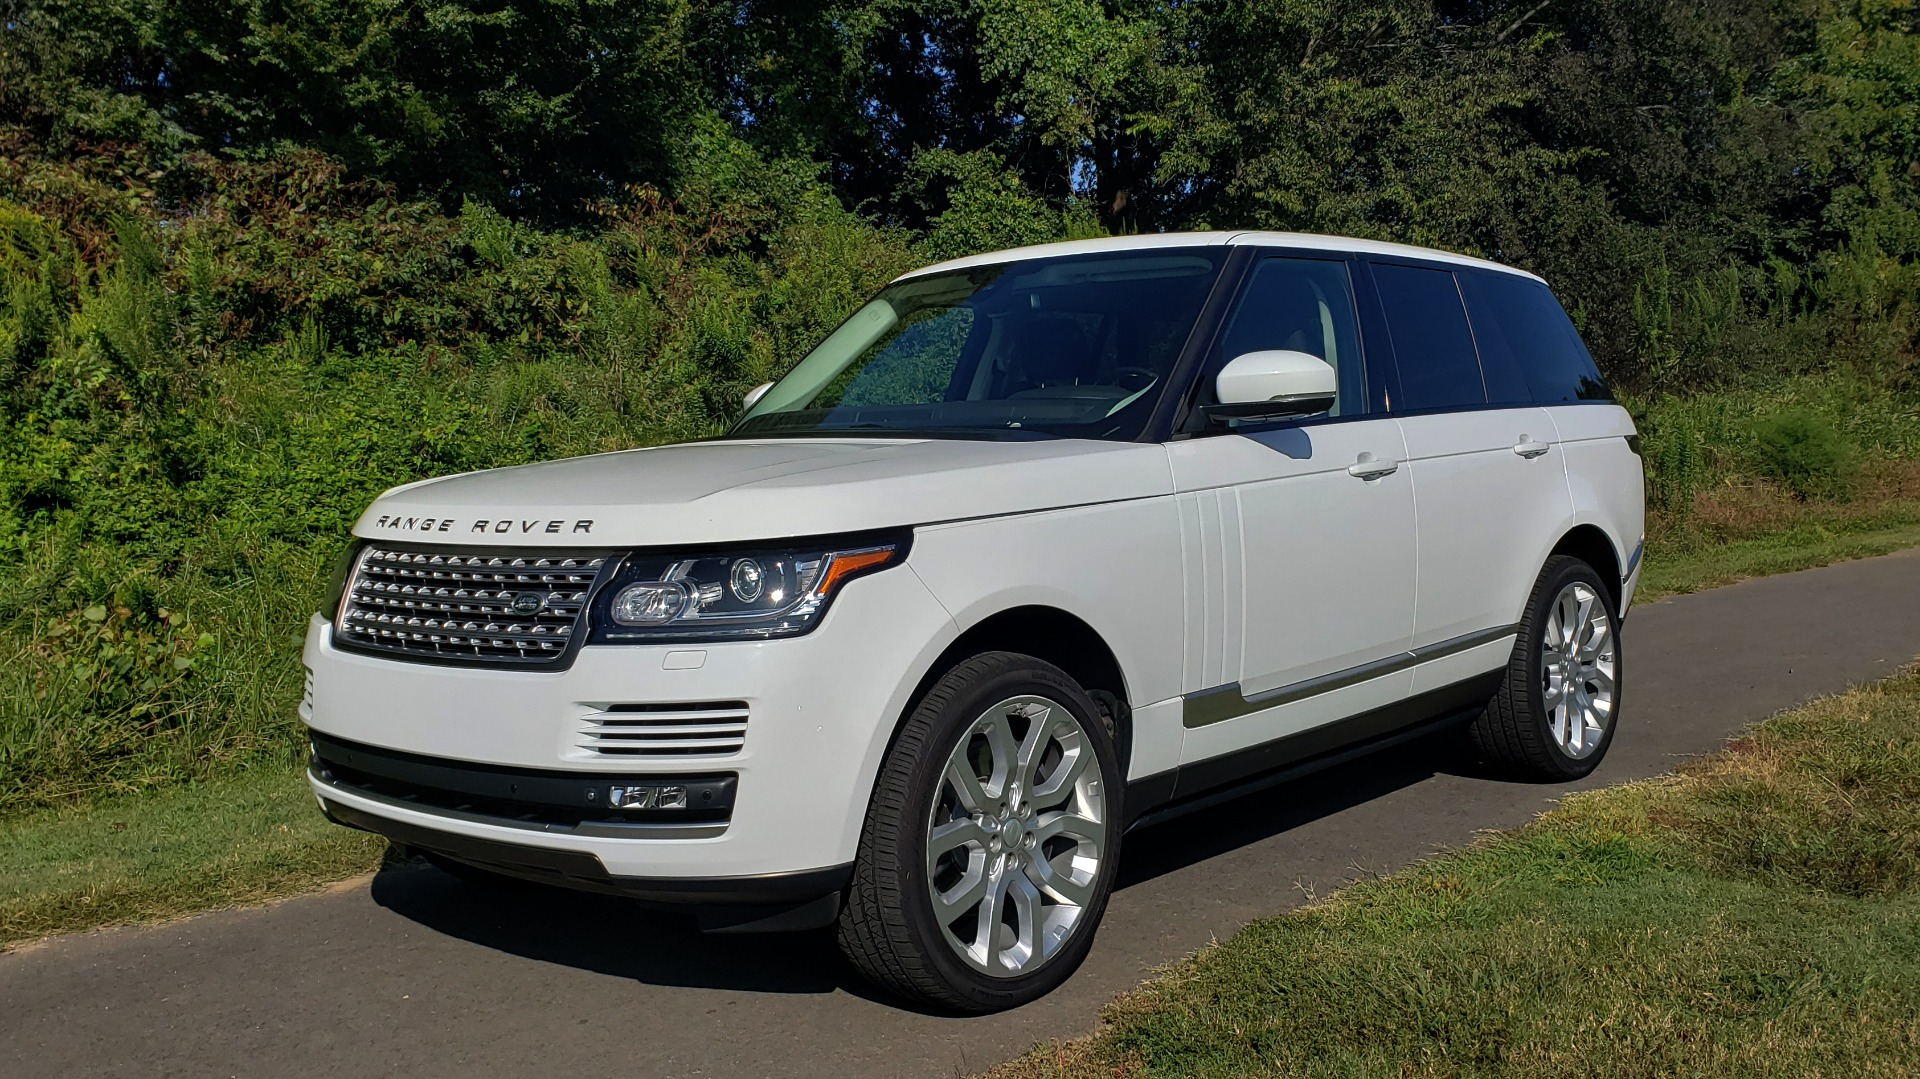 Used 2015 Land Rover Range Rover Supercharged for sale Sold at Formula Imports in Charlotte NC 28227 6